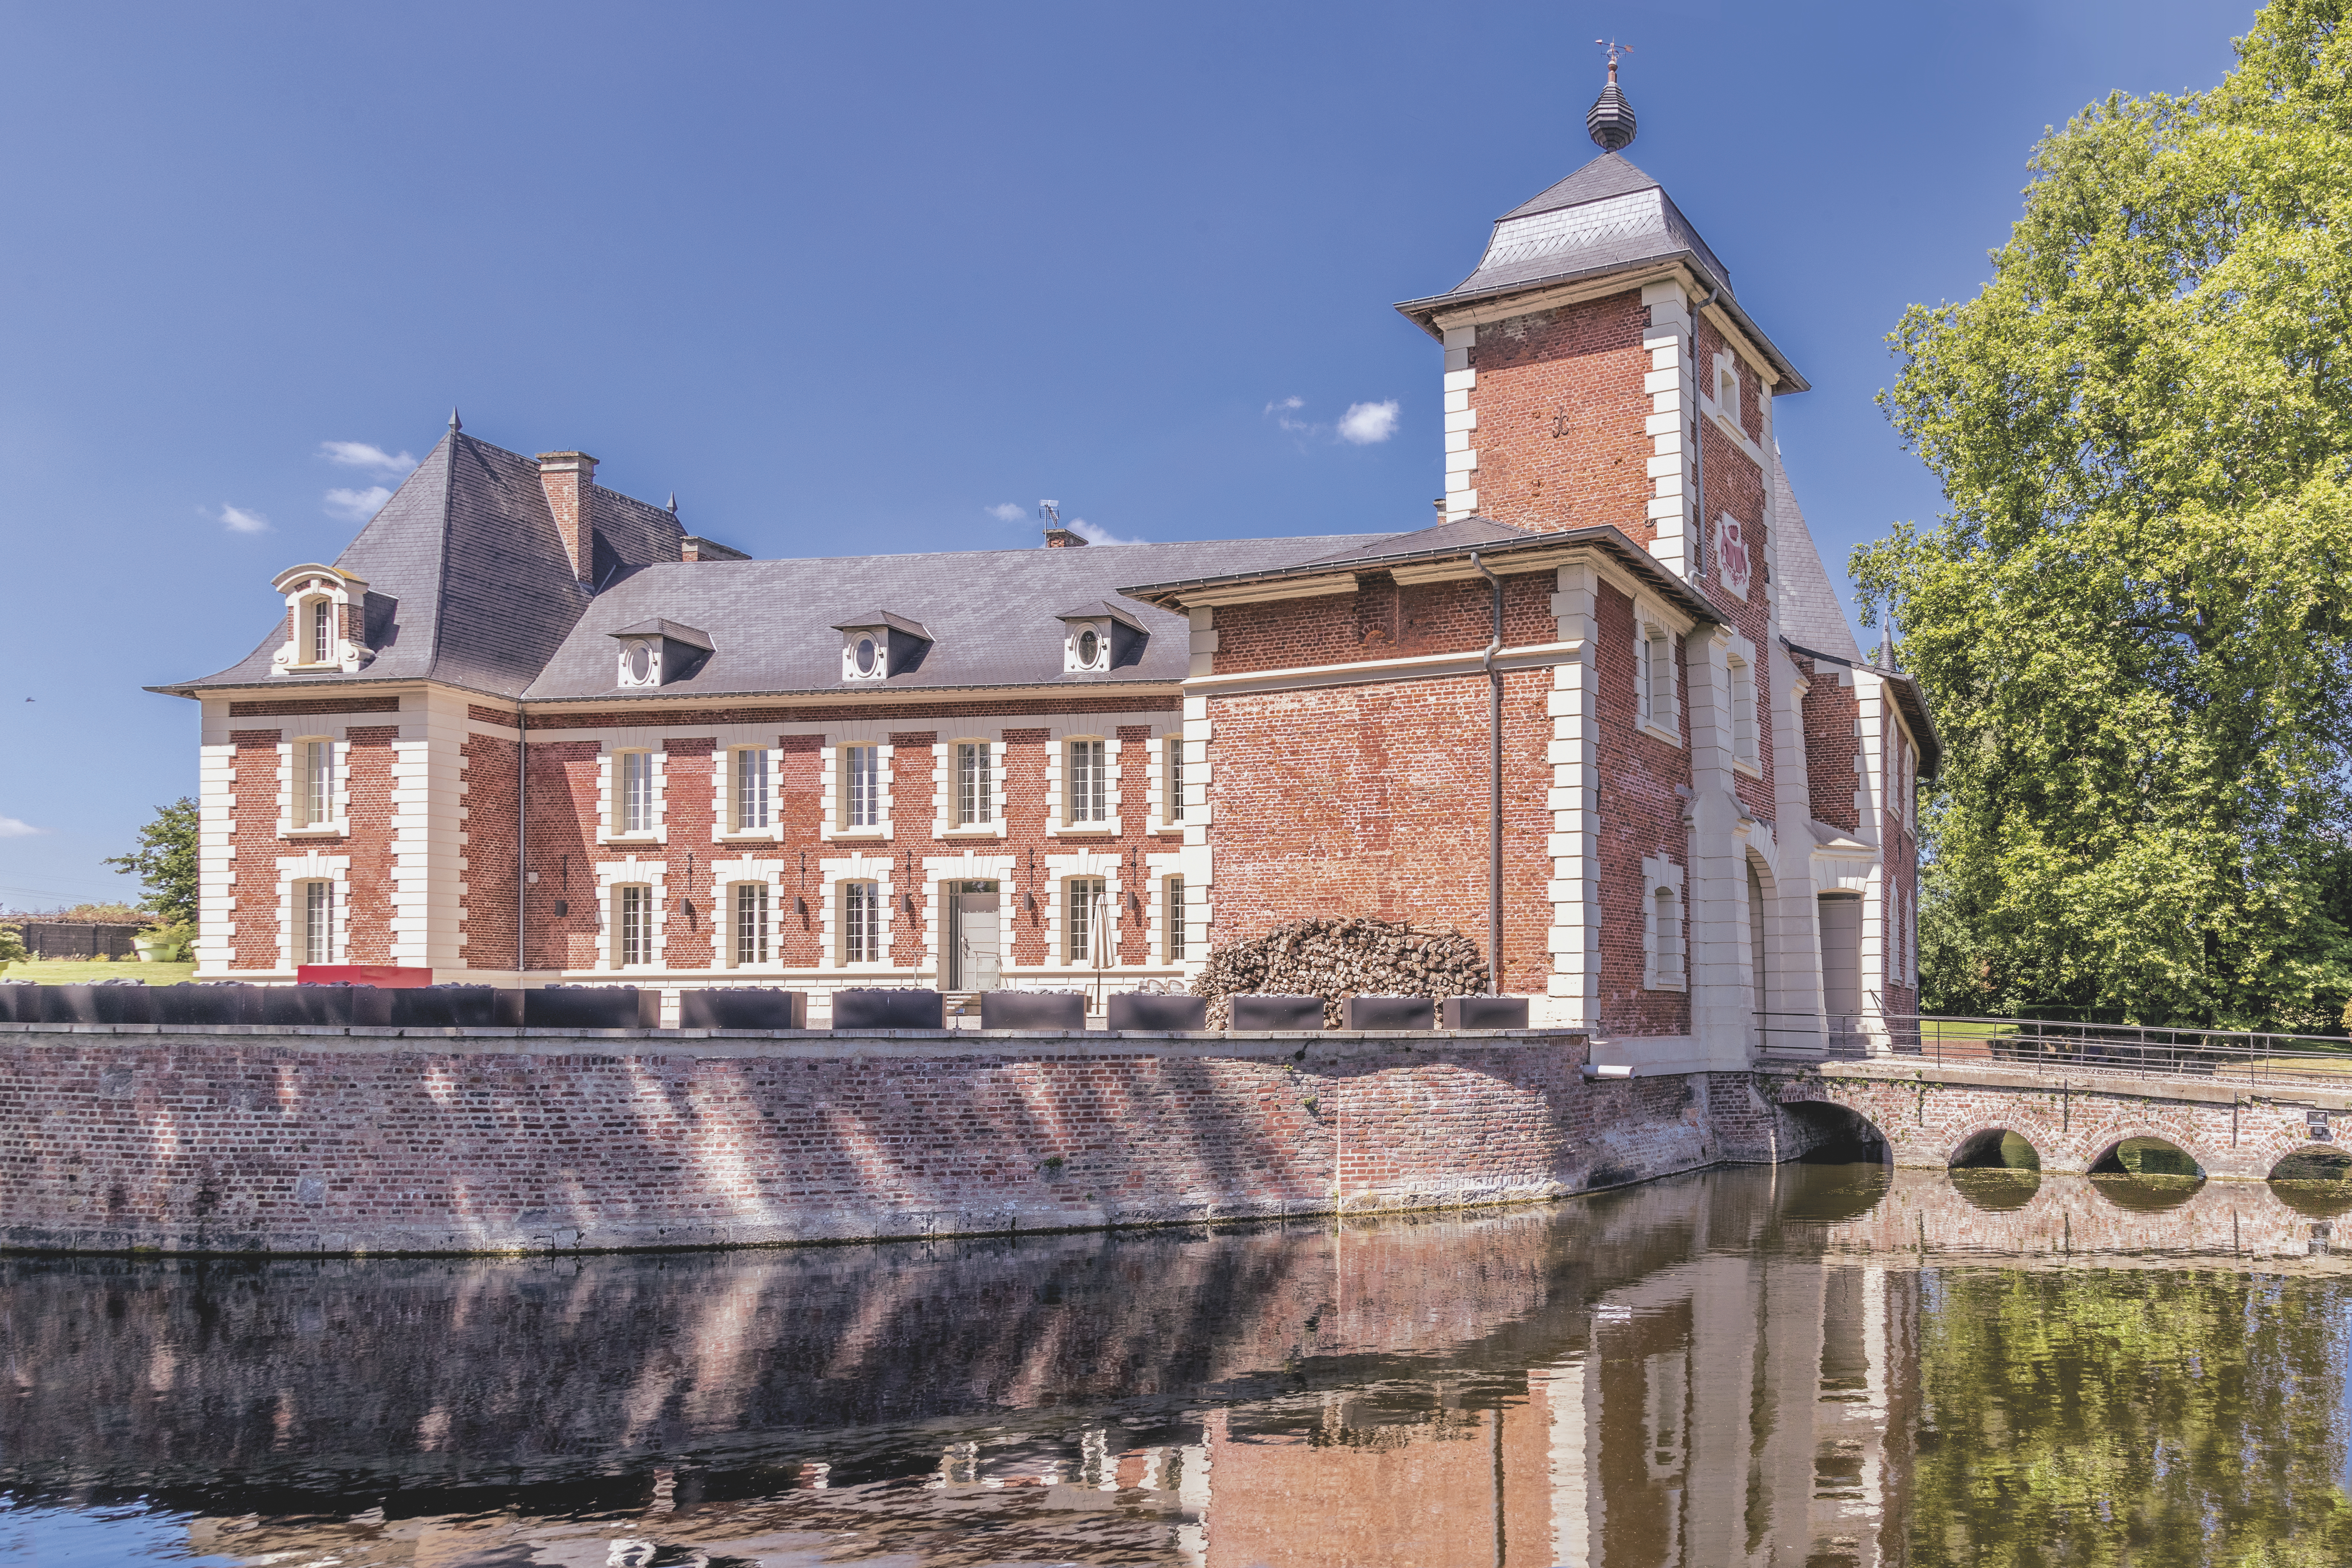 North of France 18th century chateau